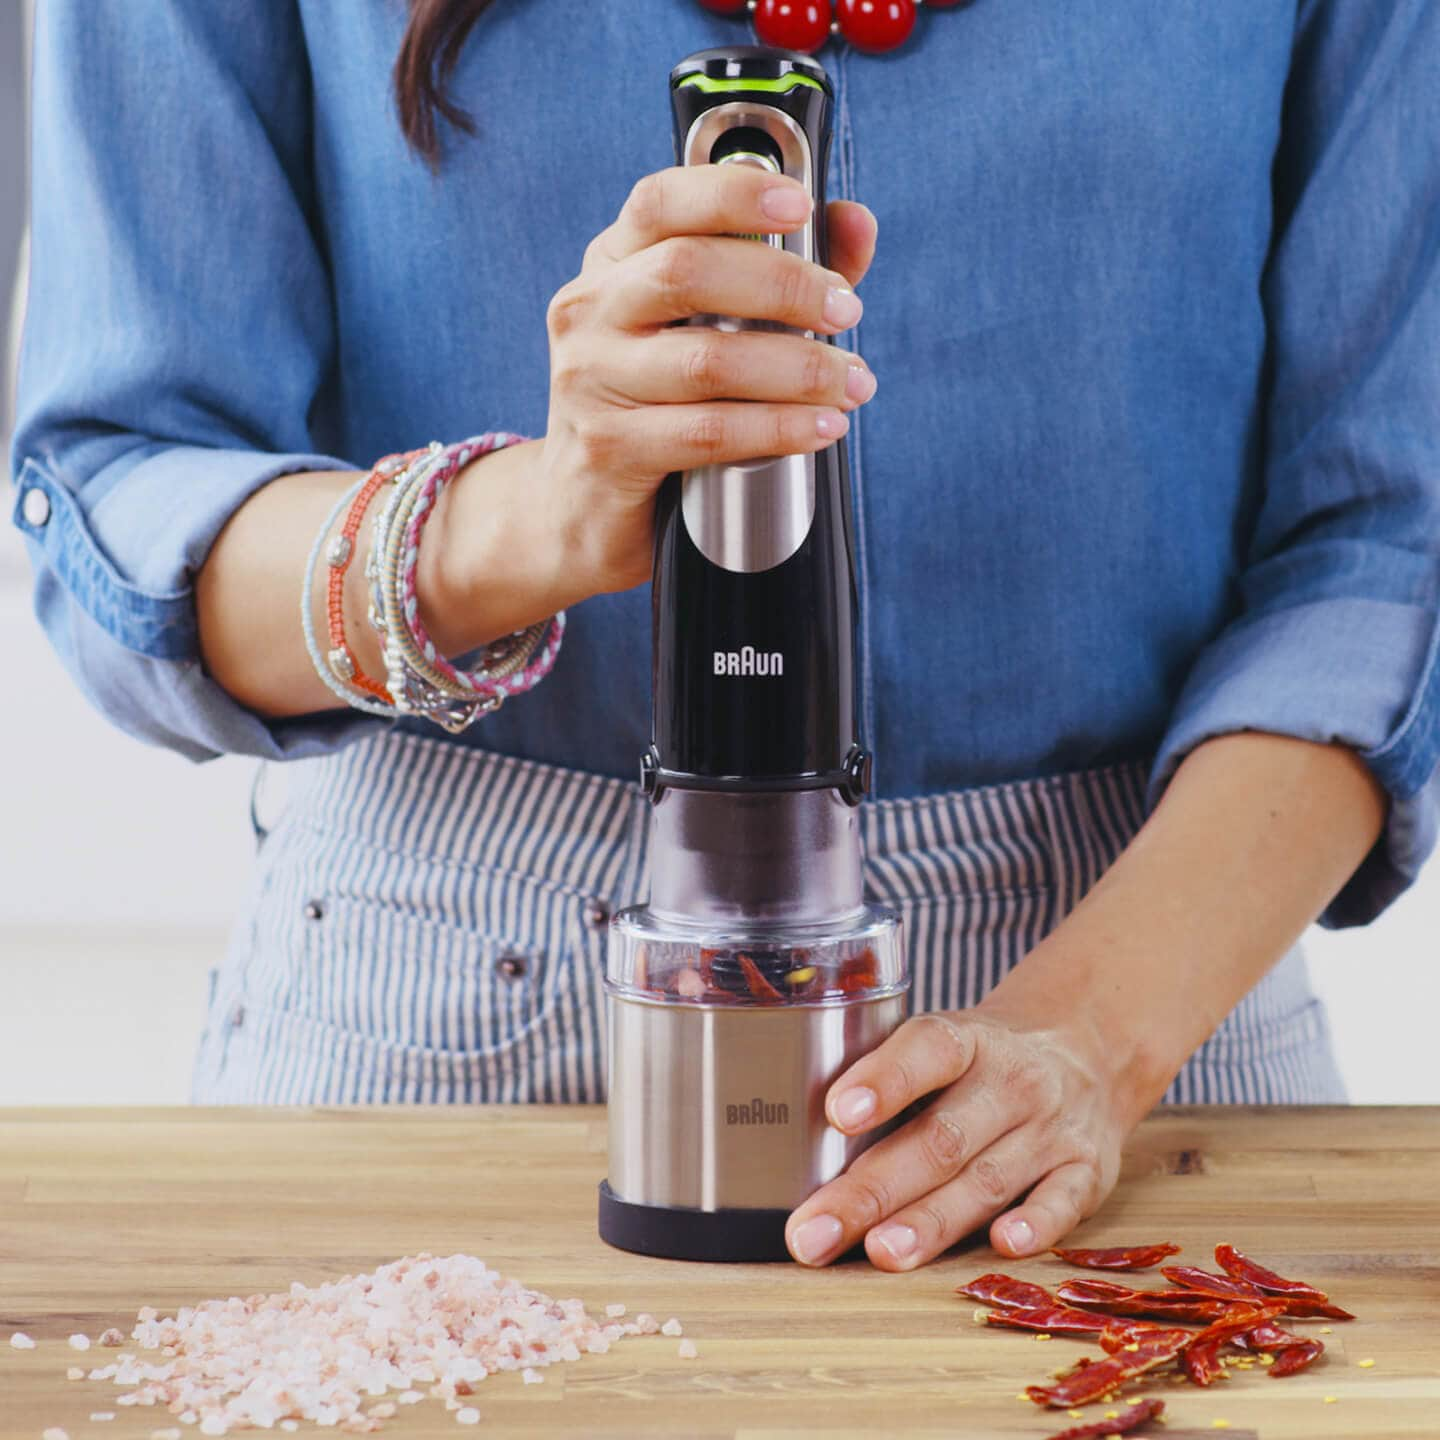 Braun MultiQuick 7 Hand blender Coffee and spice grinder accessory